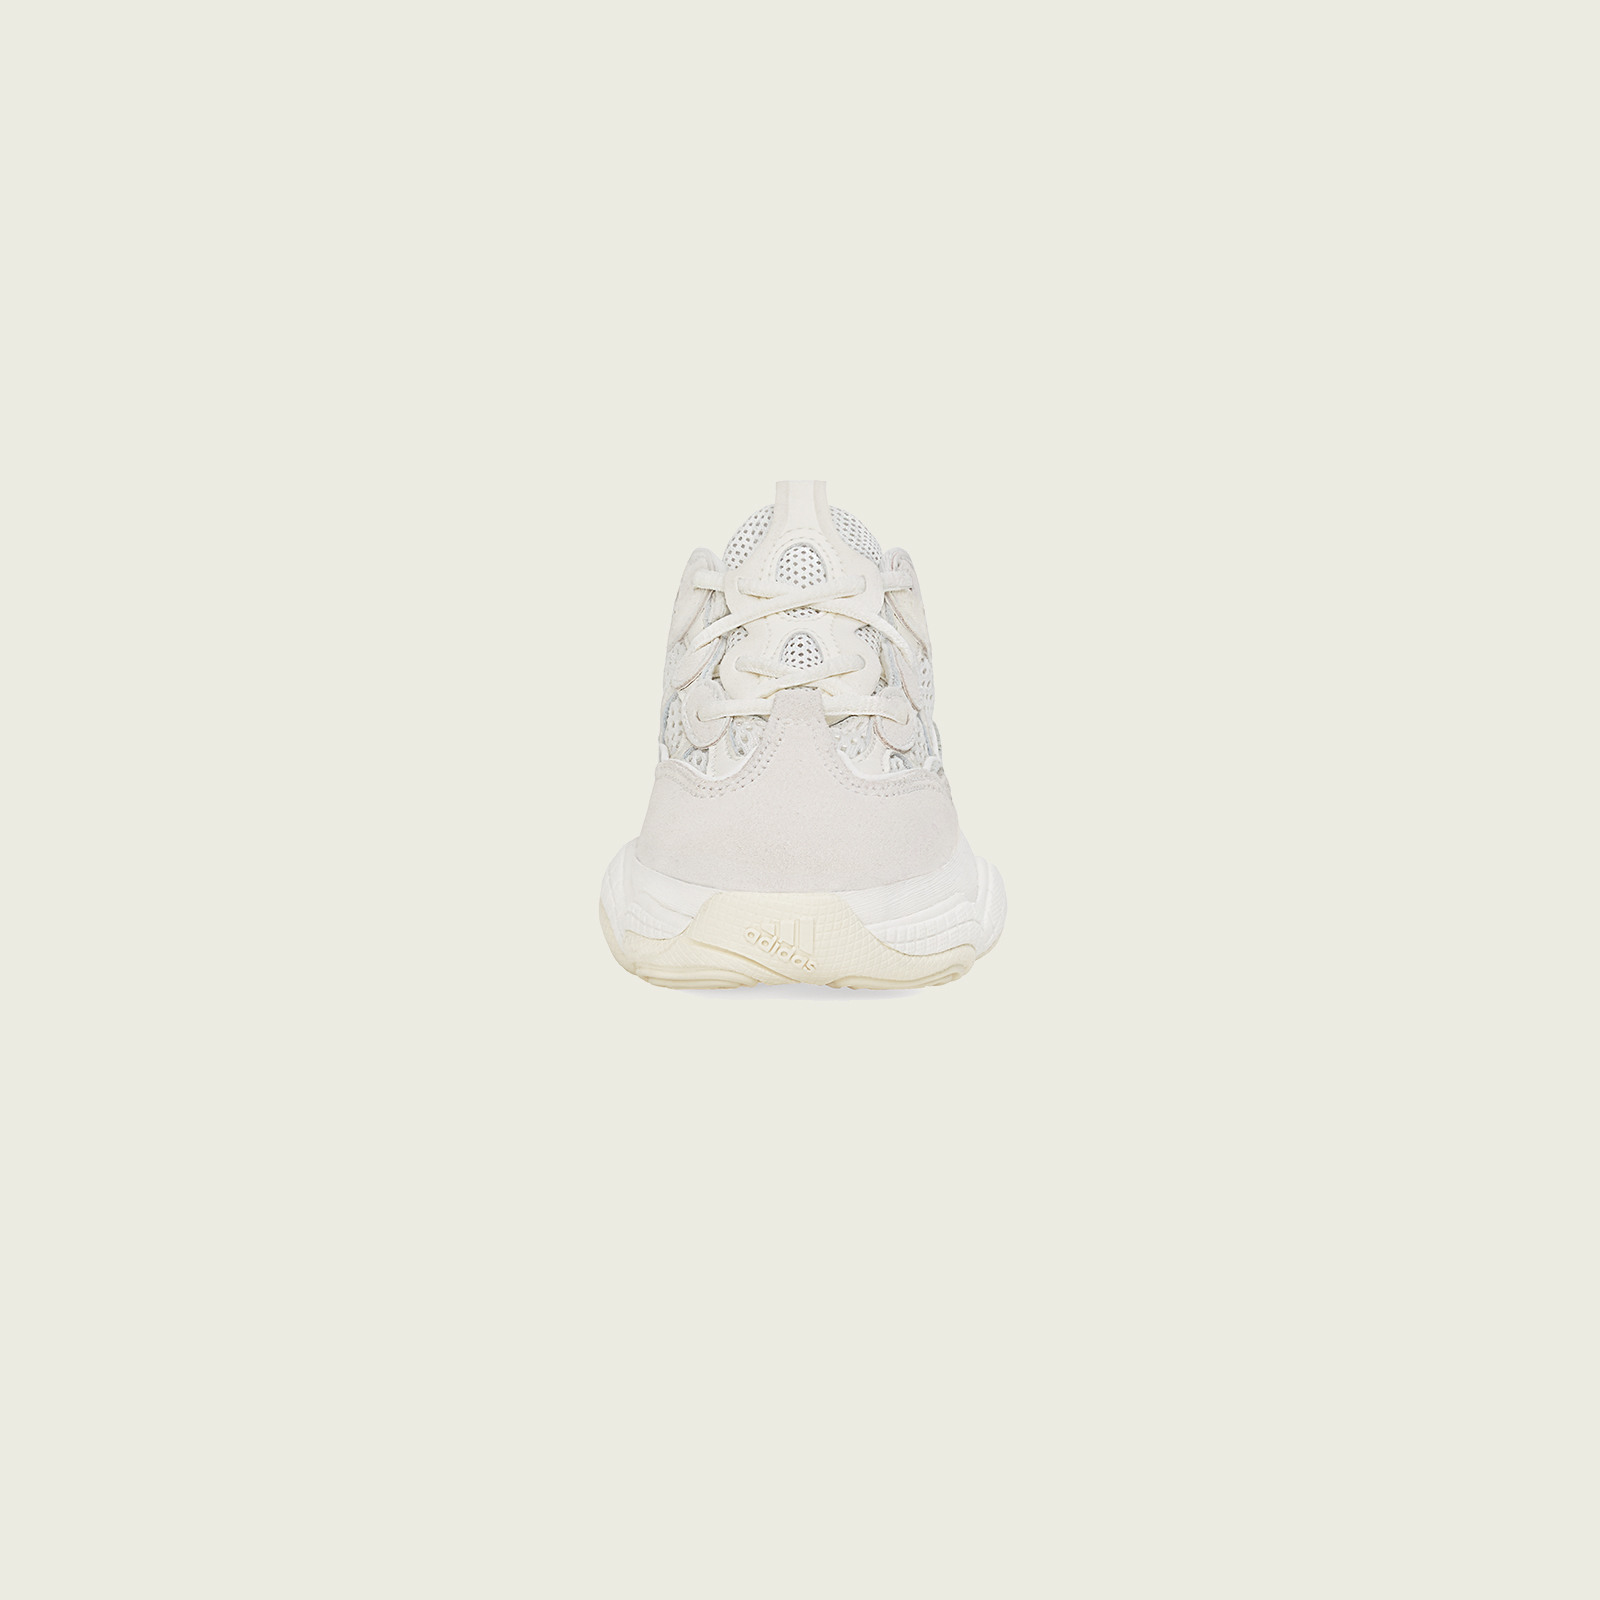 separation shoes ab43e 144c7 adidas Yeezy 500 Kids - Fv6770 - Sneakersnstuff   sneakers ...